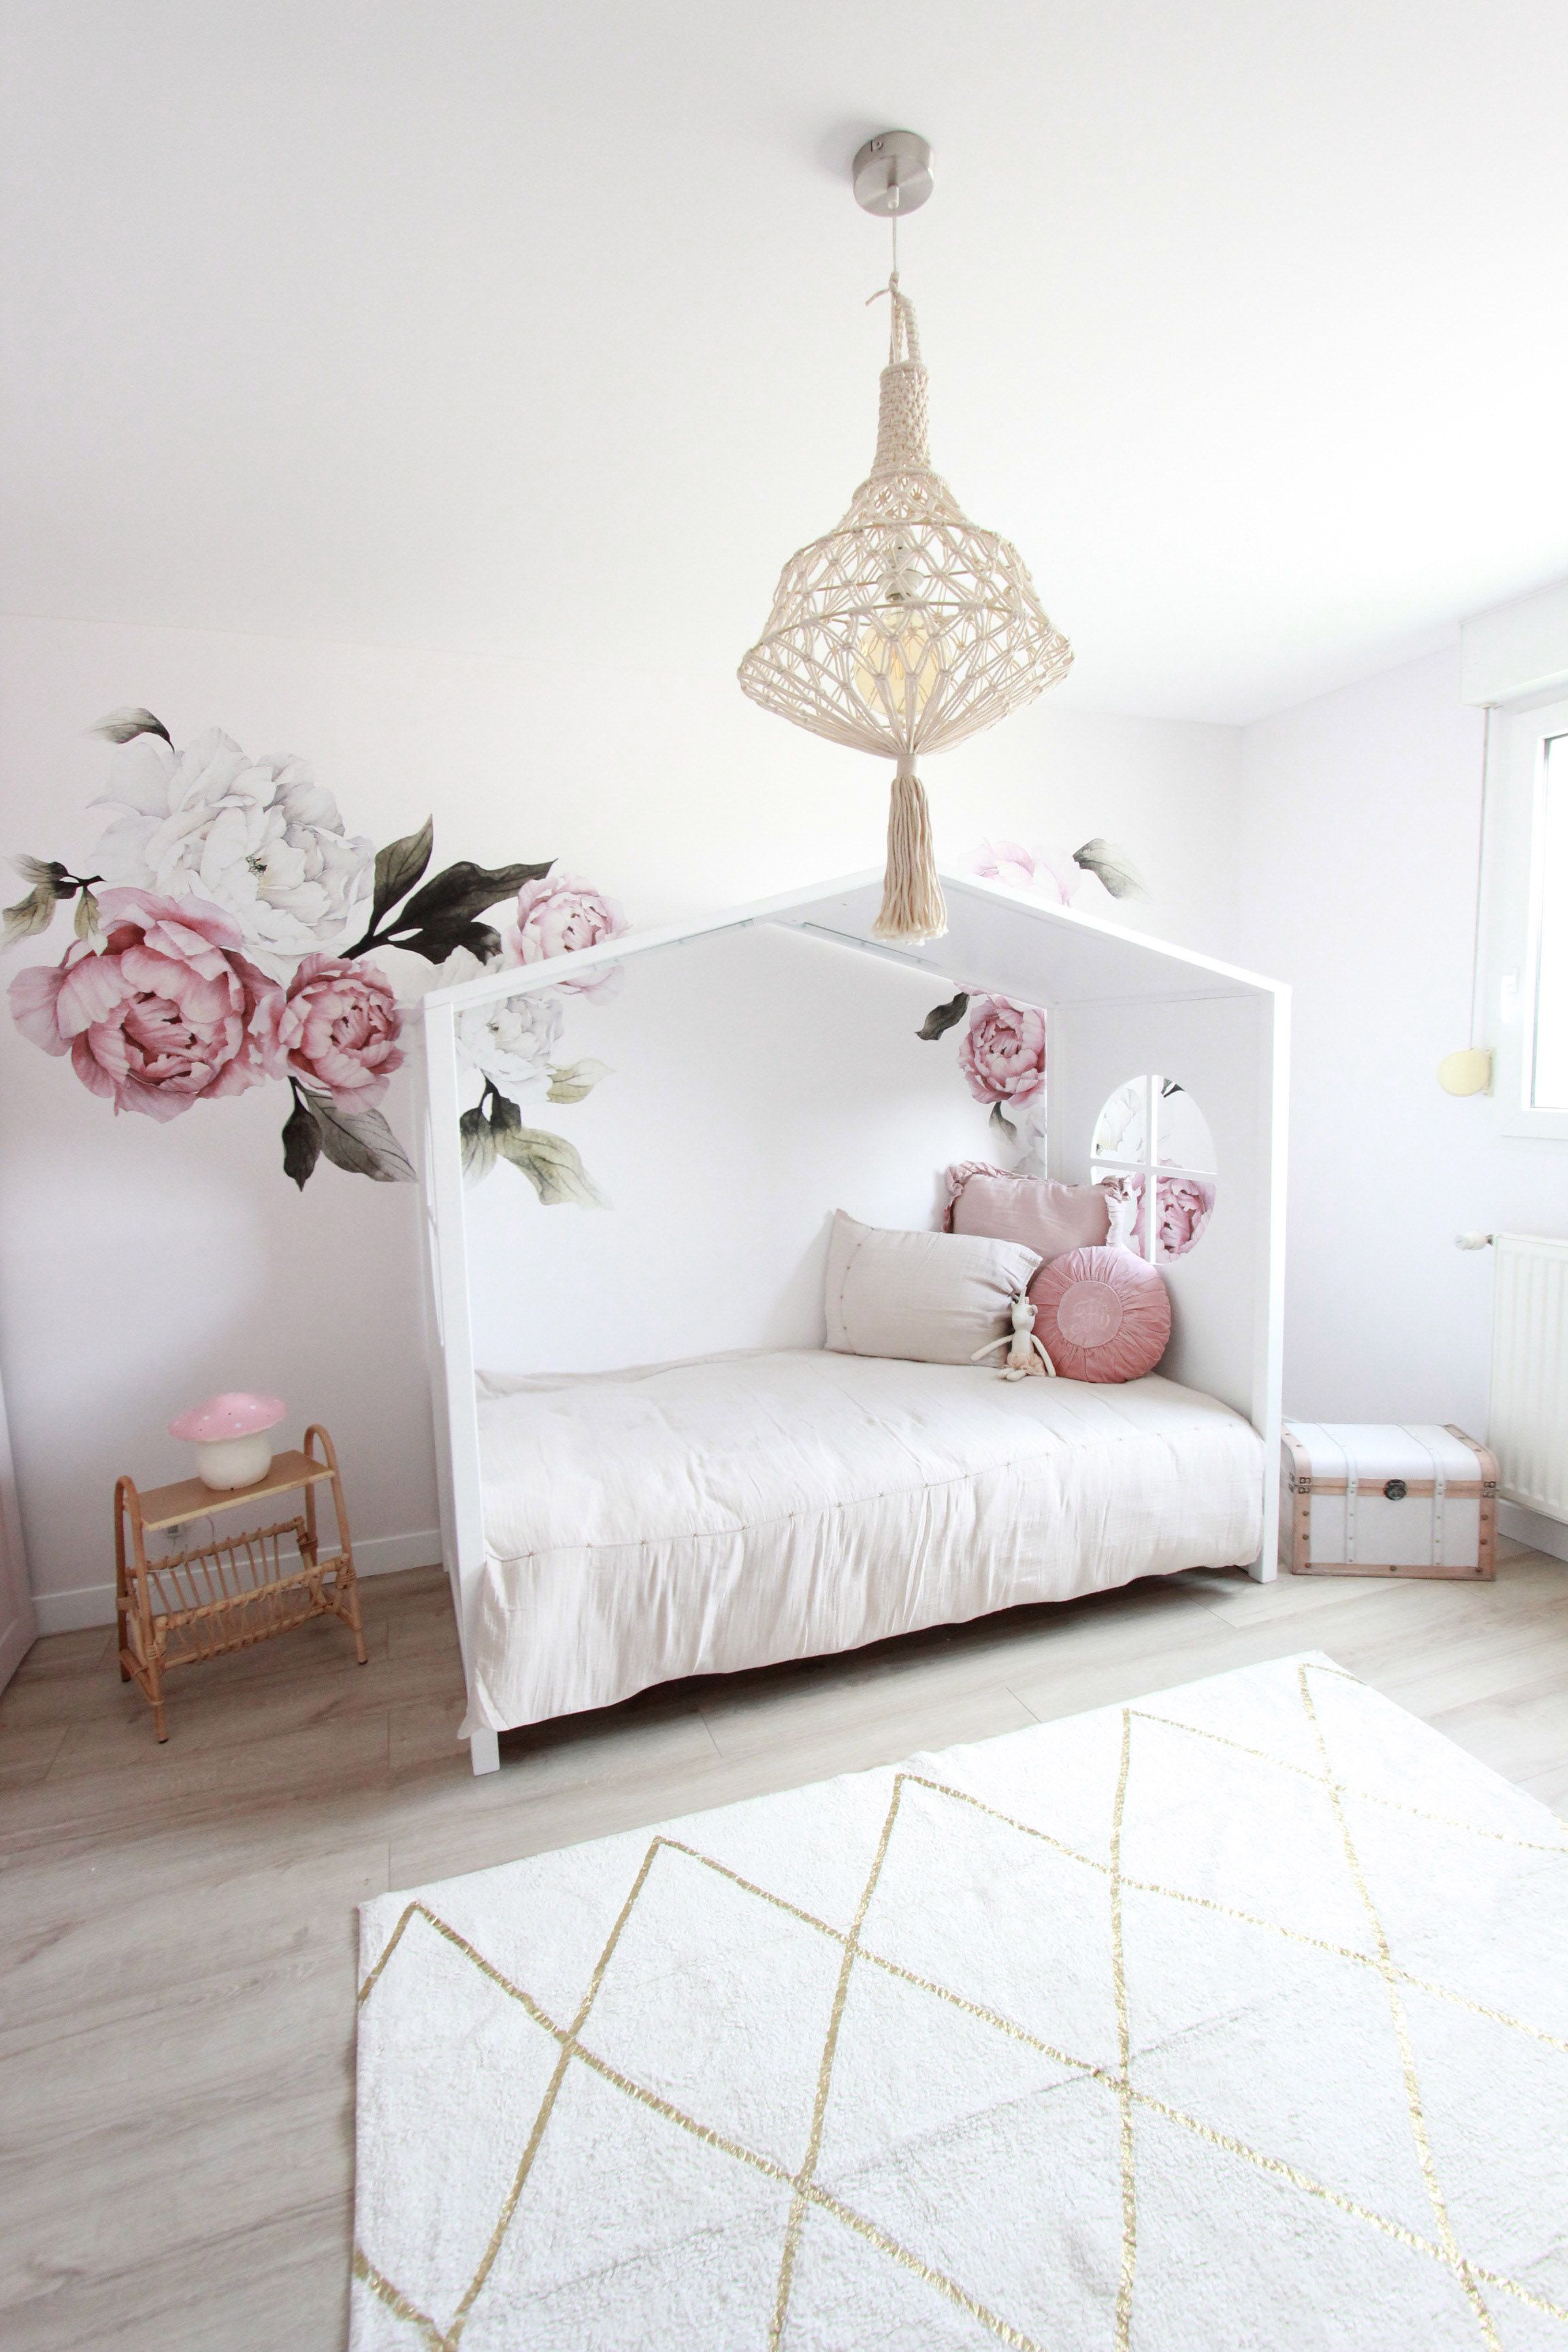 Room Tour Featuring The Blushing Peonies Simple Room Kid Room